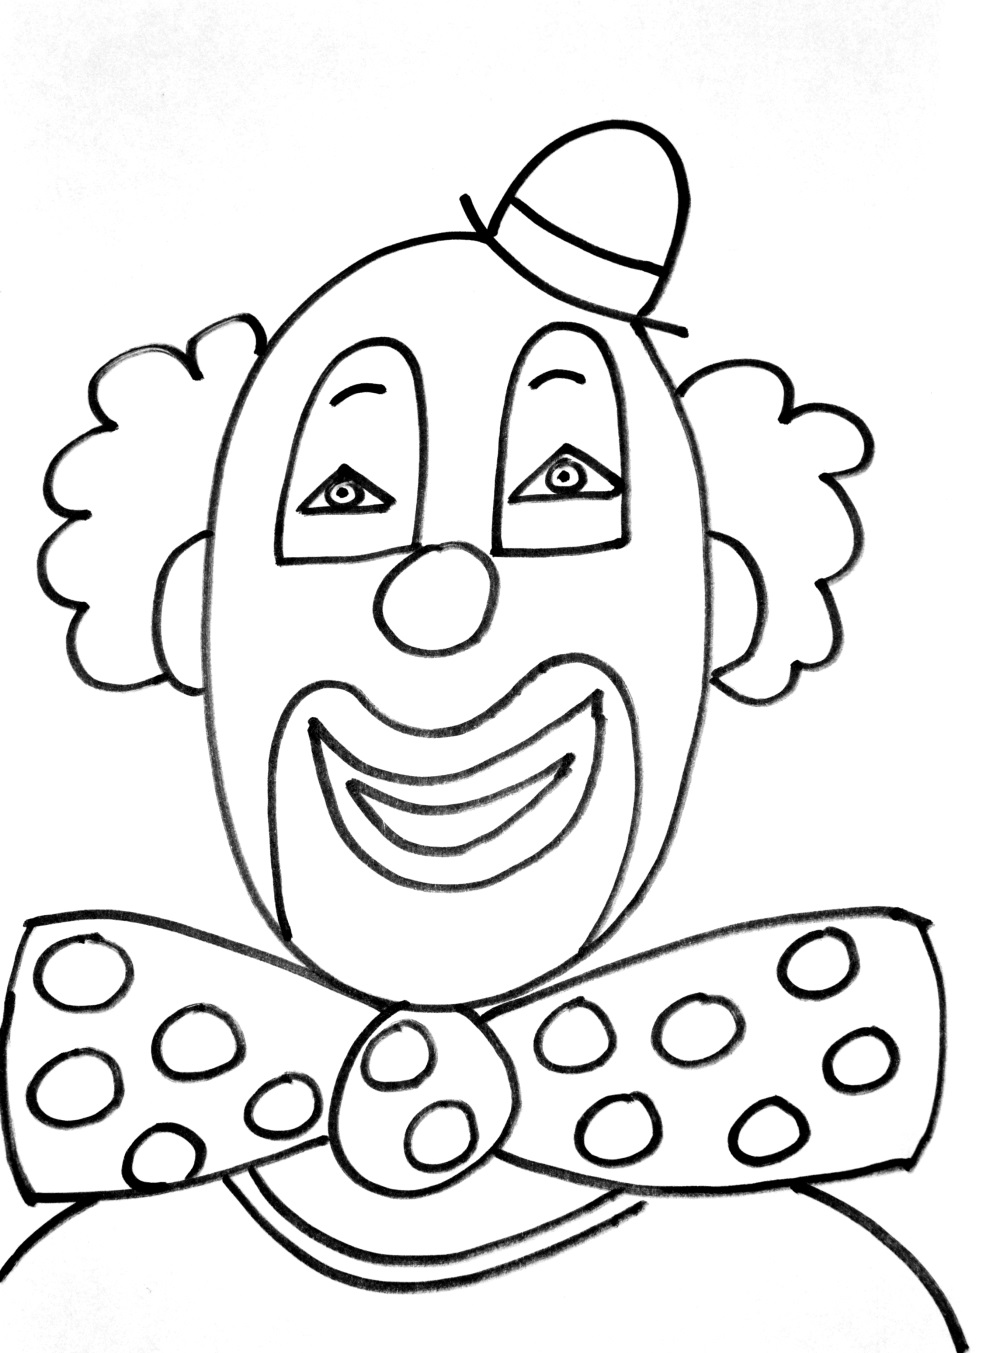 Coloriage clown cirque imprimer - Coloriage clown a imprimer ...